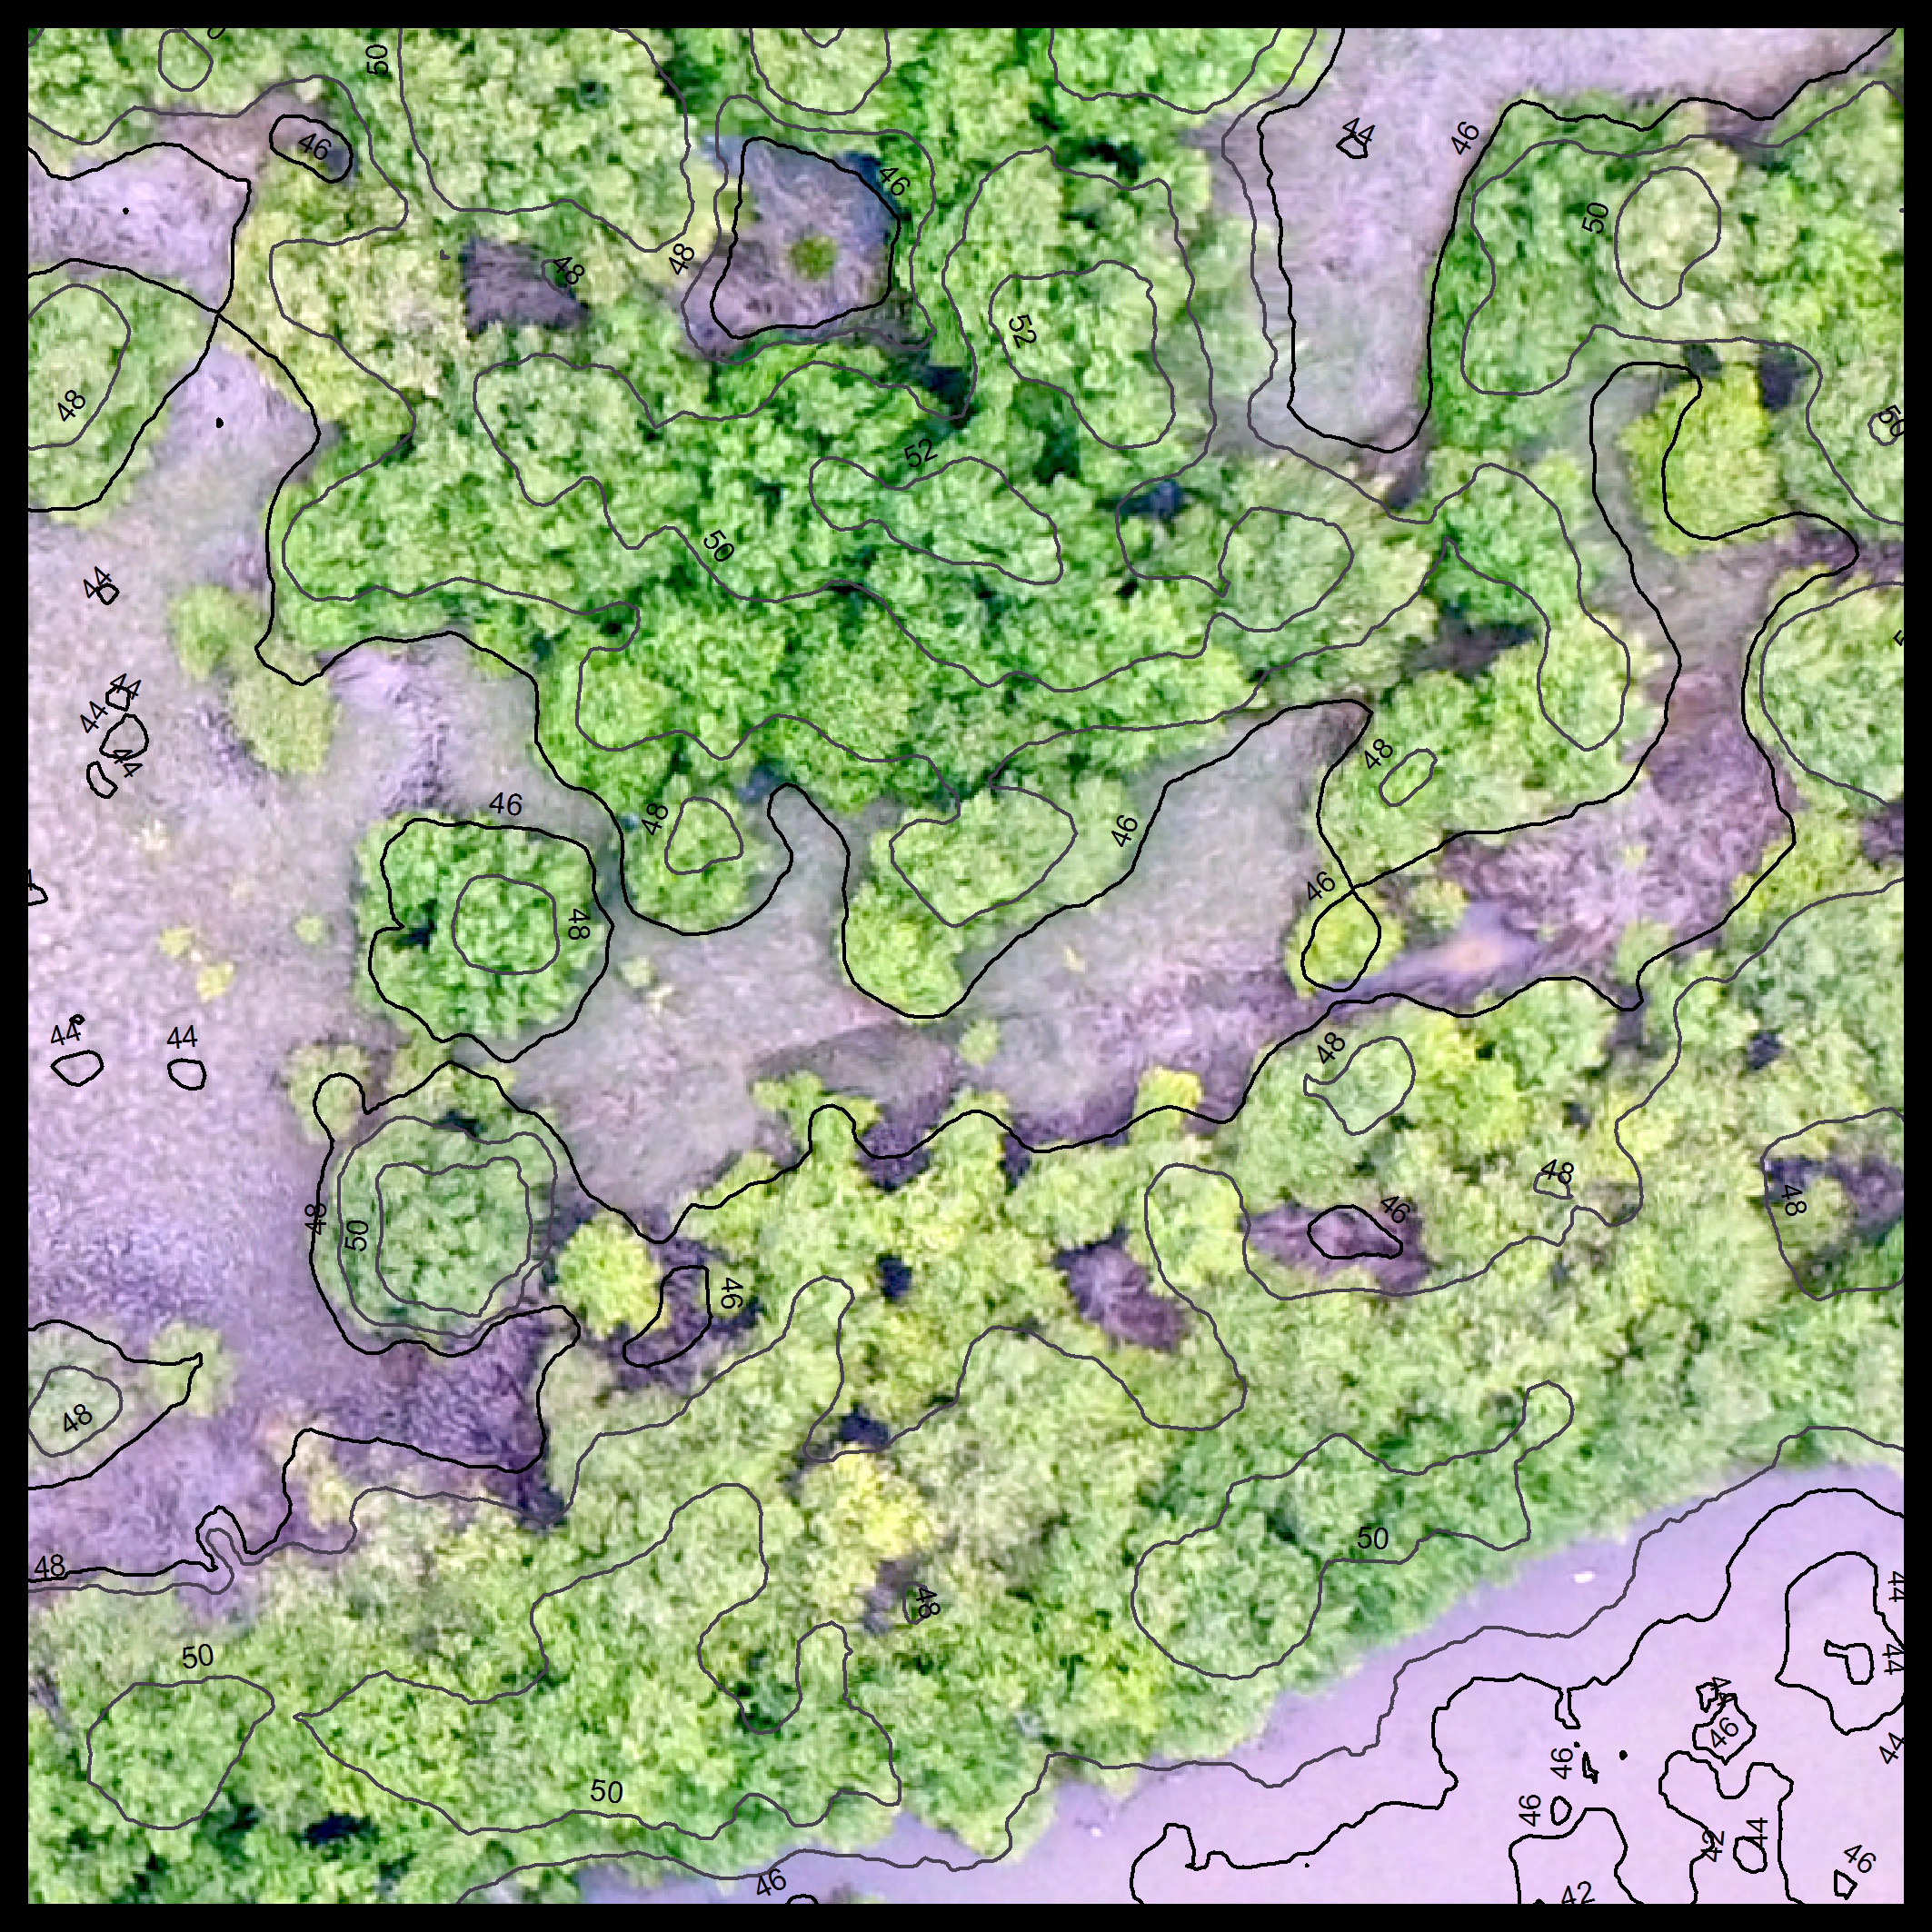 We use imagery from UAVs to calculate the heights and volume of individual mangrove trees, and can use this information to calculate the above-ground carbon stock within a given area.